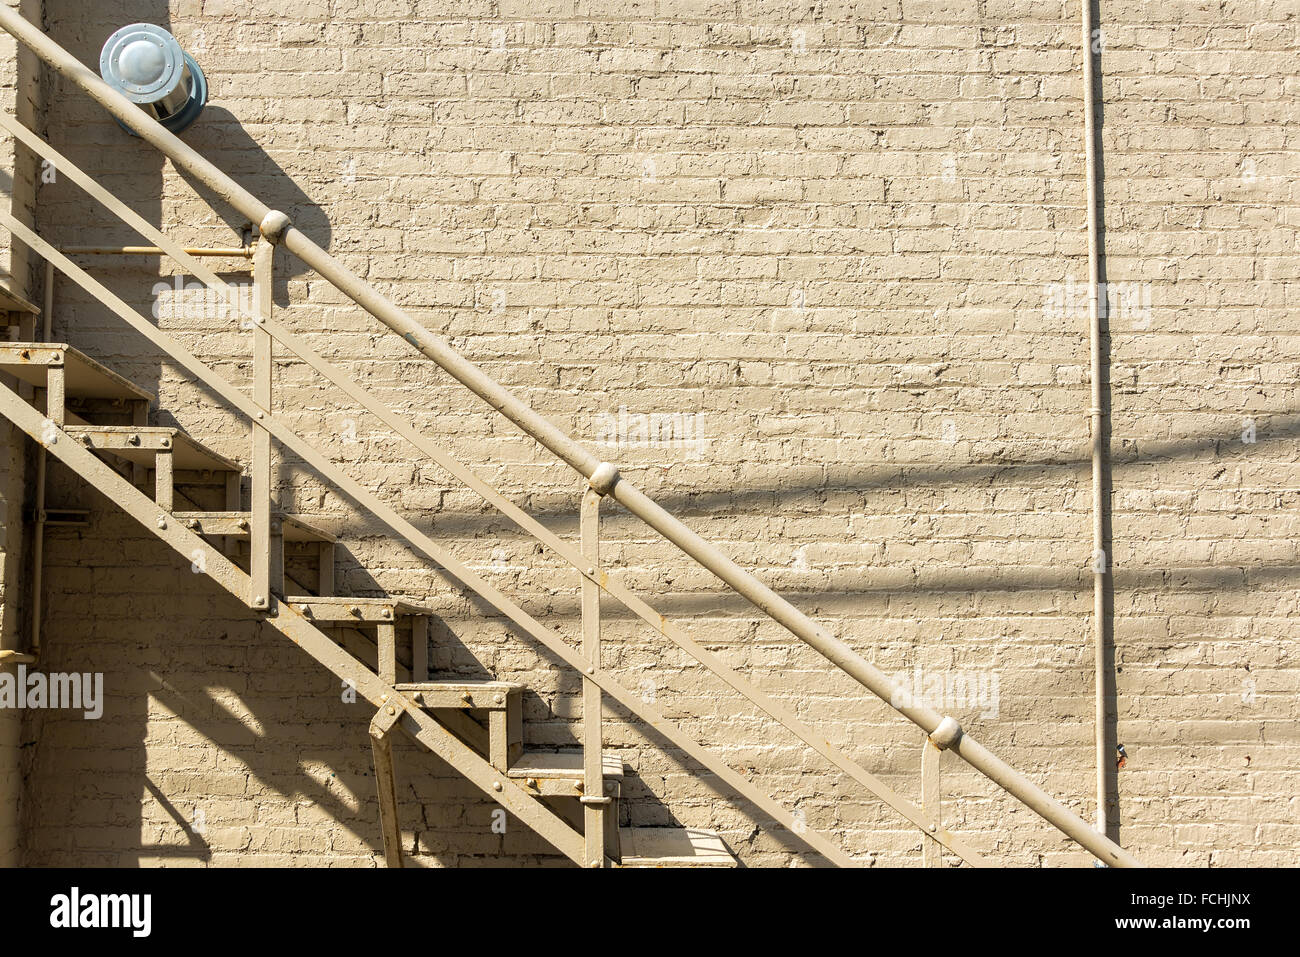 Staircase and brick wall in an alley in Wallace, Idaho - Stock Image